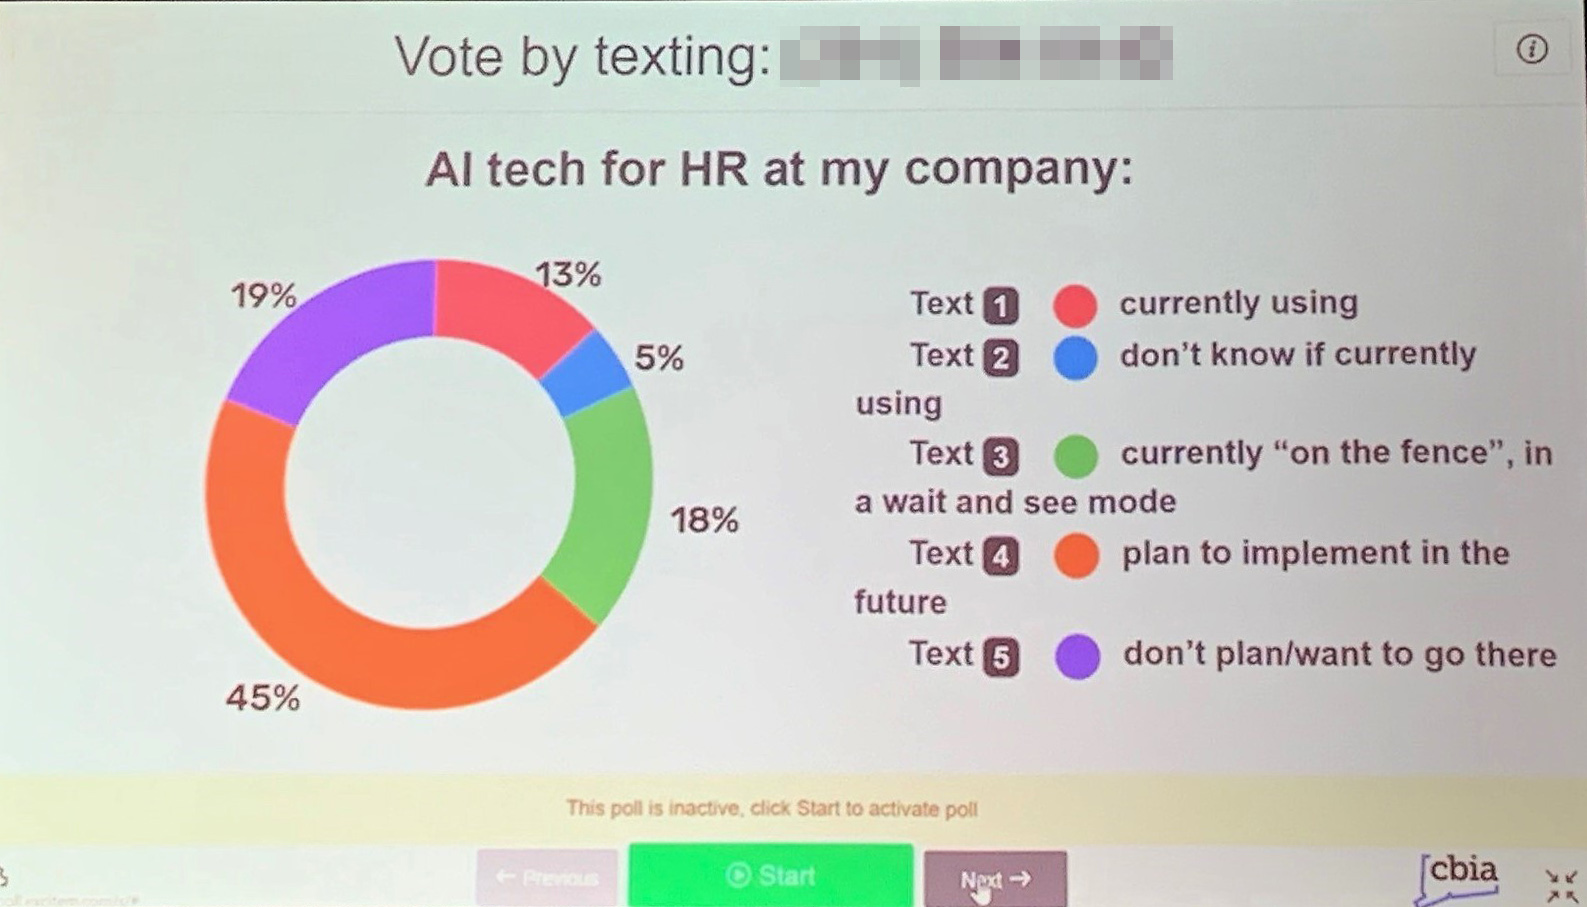 HR, Human Resources, AI, Artificial Intelligence, AI for HR, technology